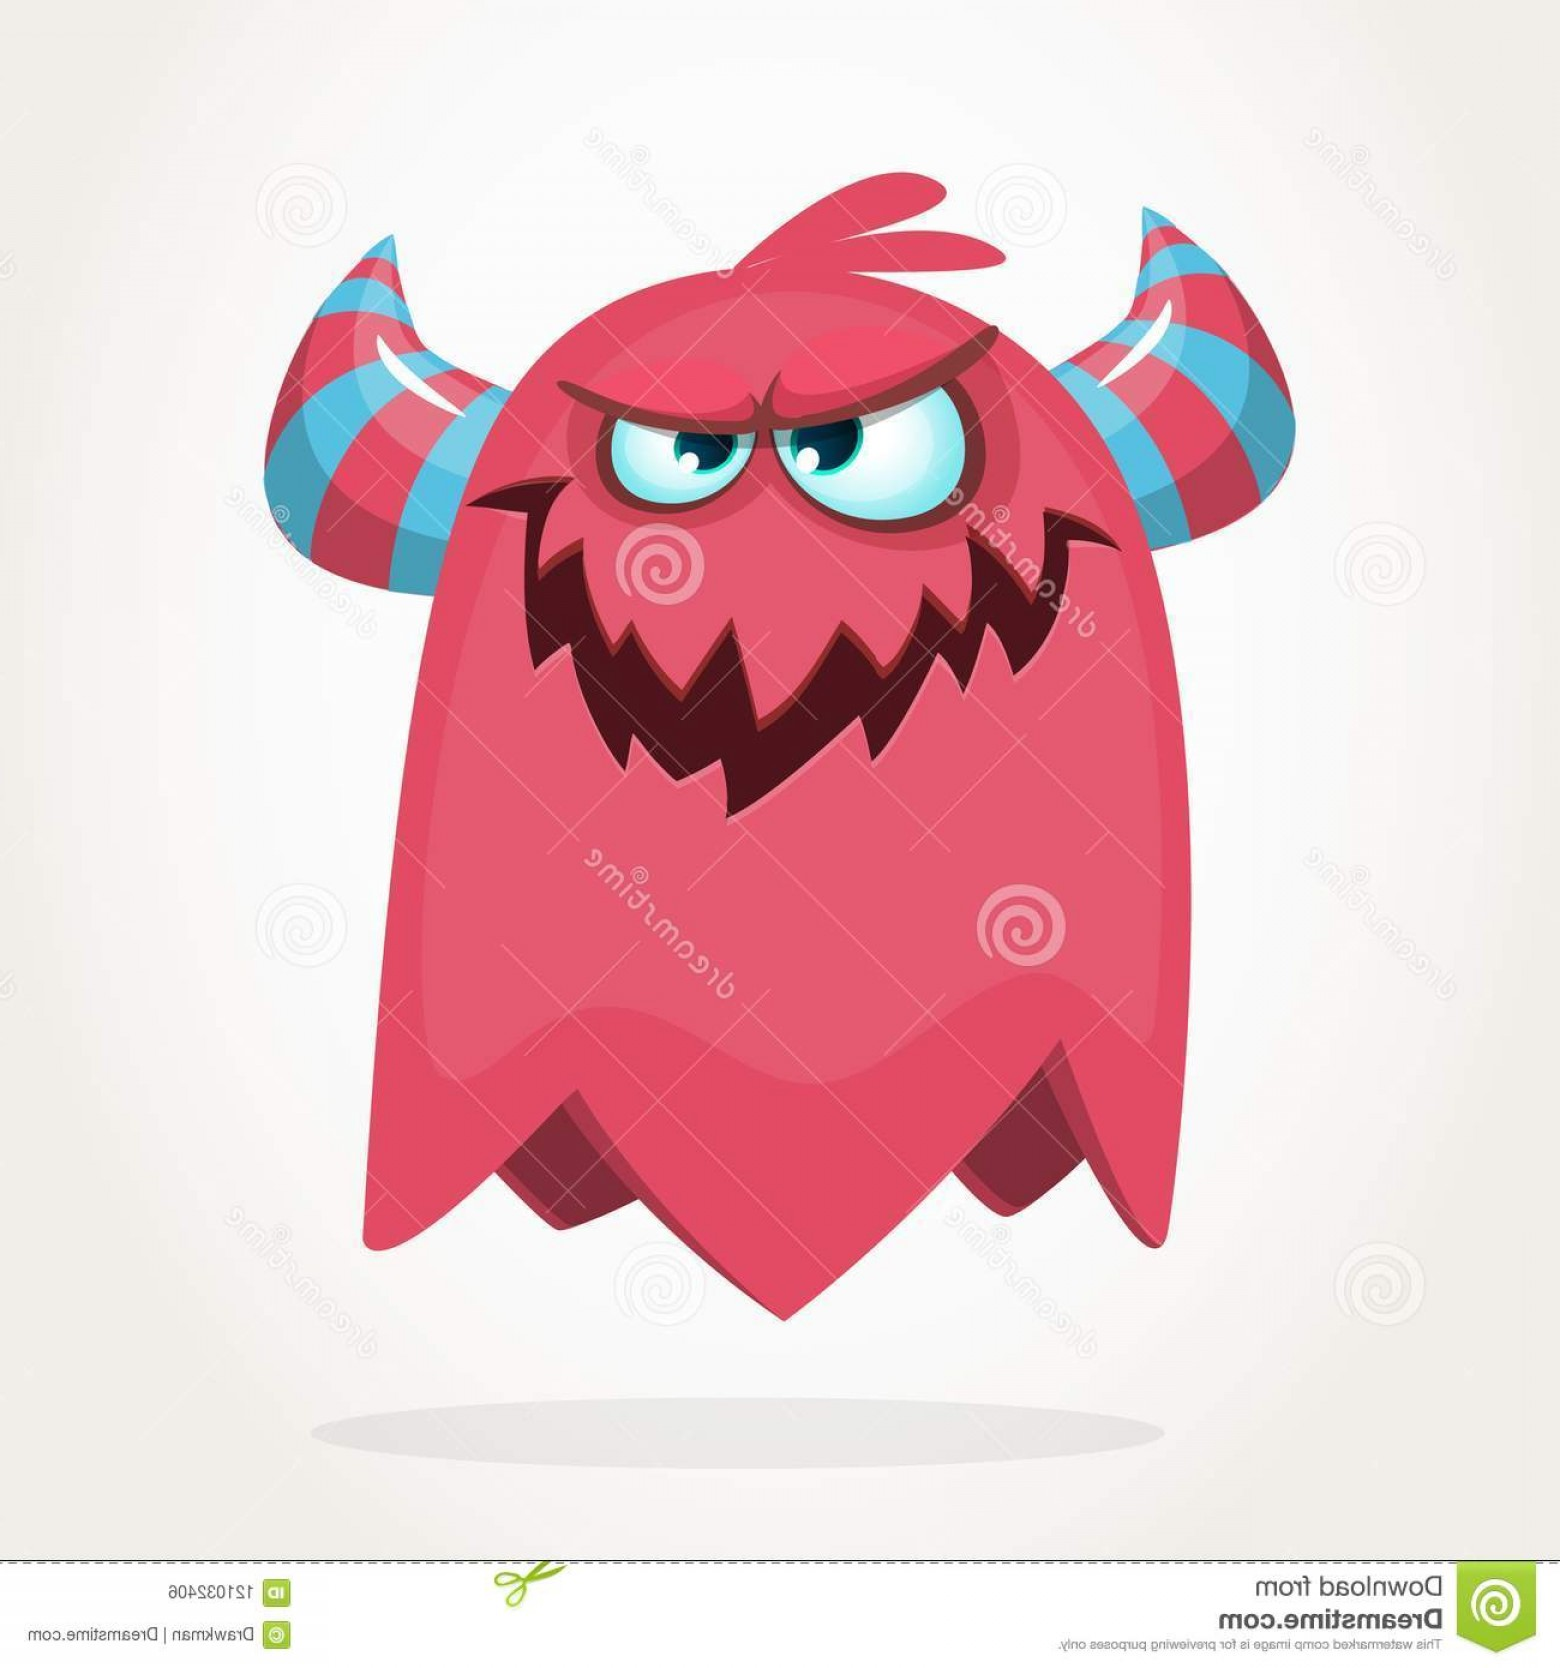 Cool Evil Vectors: Evil Cool Cartoon Fat Flying Monster Purple Horned Vector Monster Character Evil Cool Cartoon Fat Flying Monster Purple Image